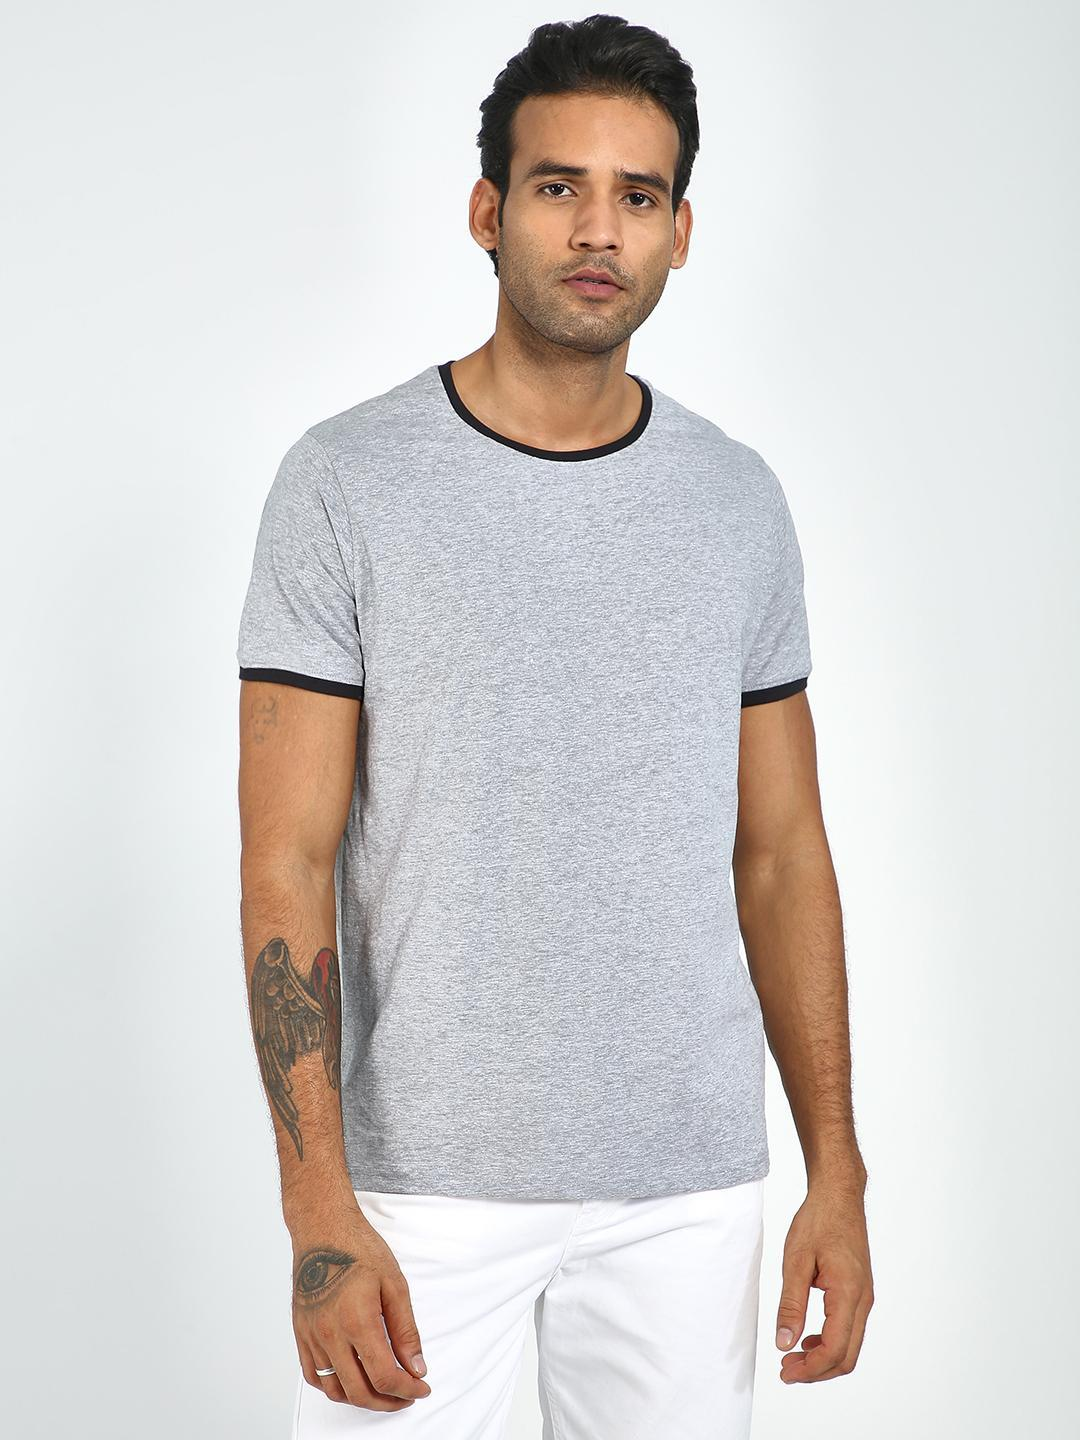 Blue Saint Grey Casual Round Neck T-Shirt 1